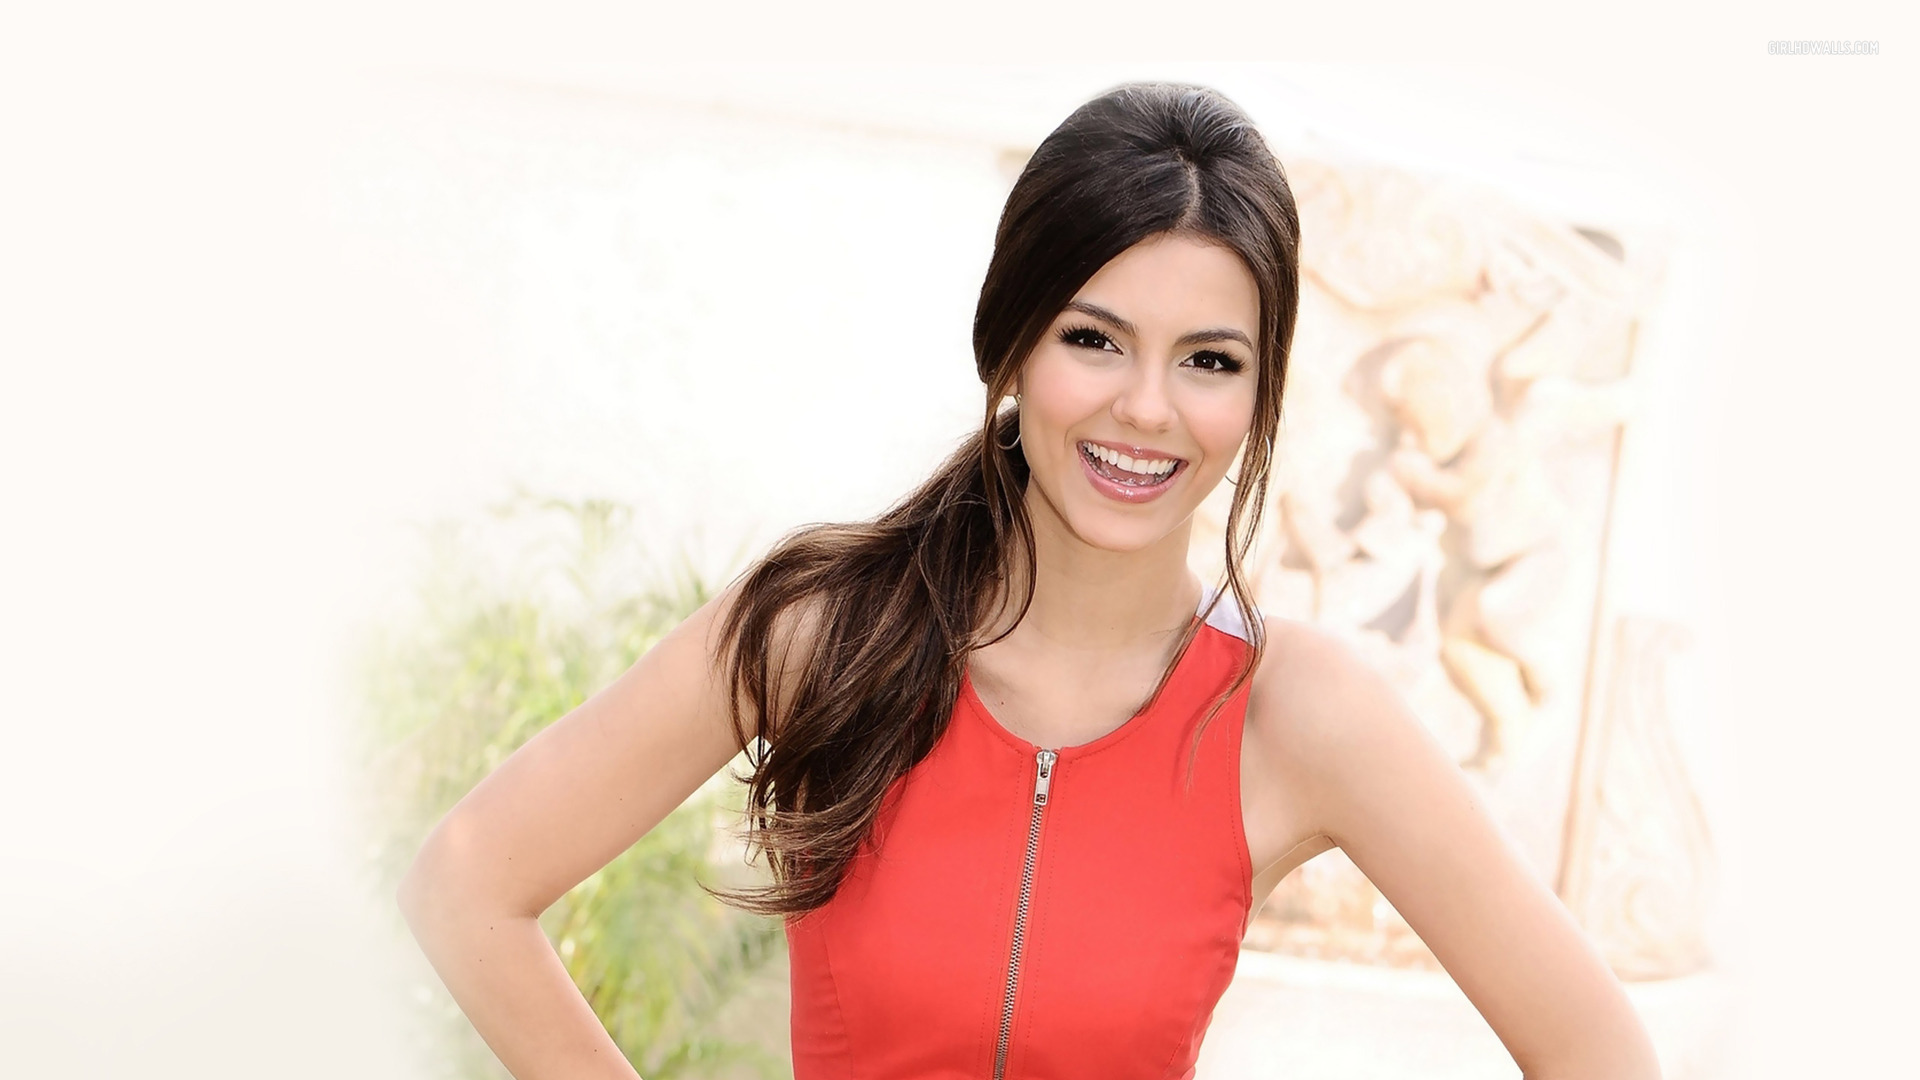 Victoria Justice Wallpaper Girl 40639 Hd Wallpapers Background Celebrations Picture